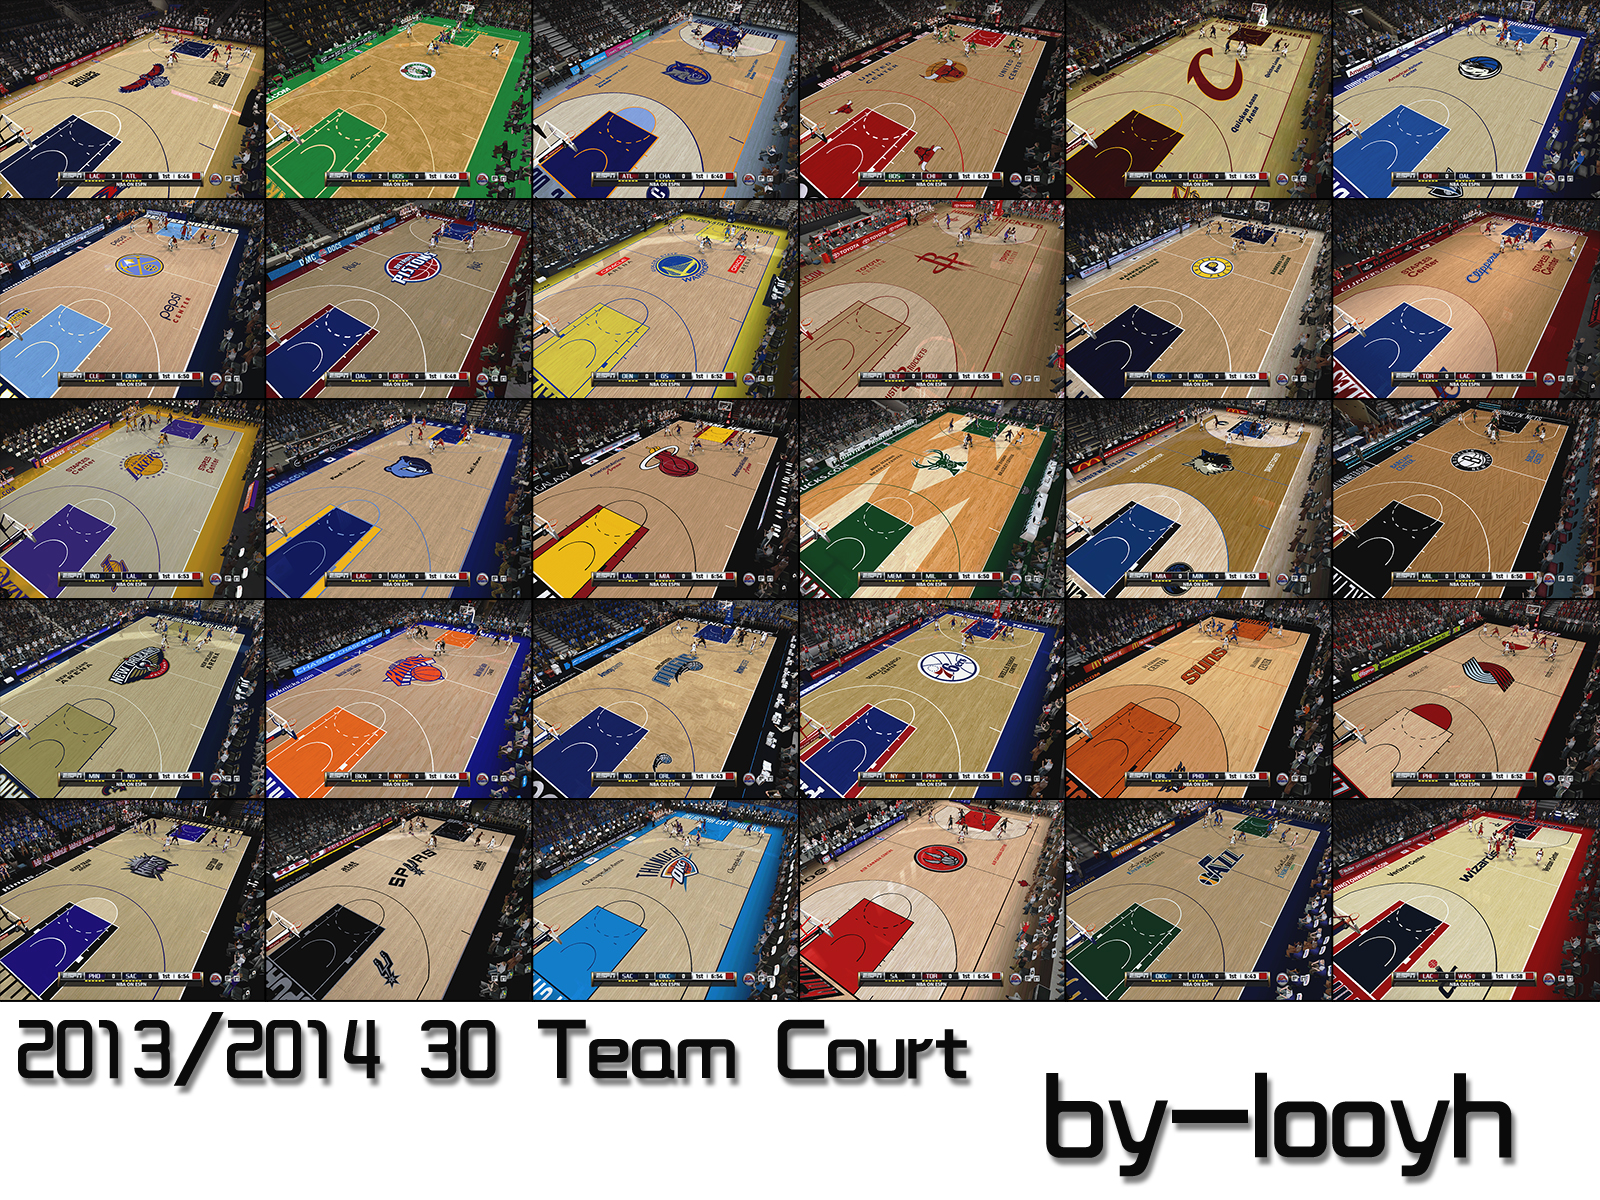 2013/2014 30 Team Court Pack (HD)